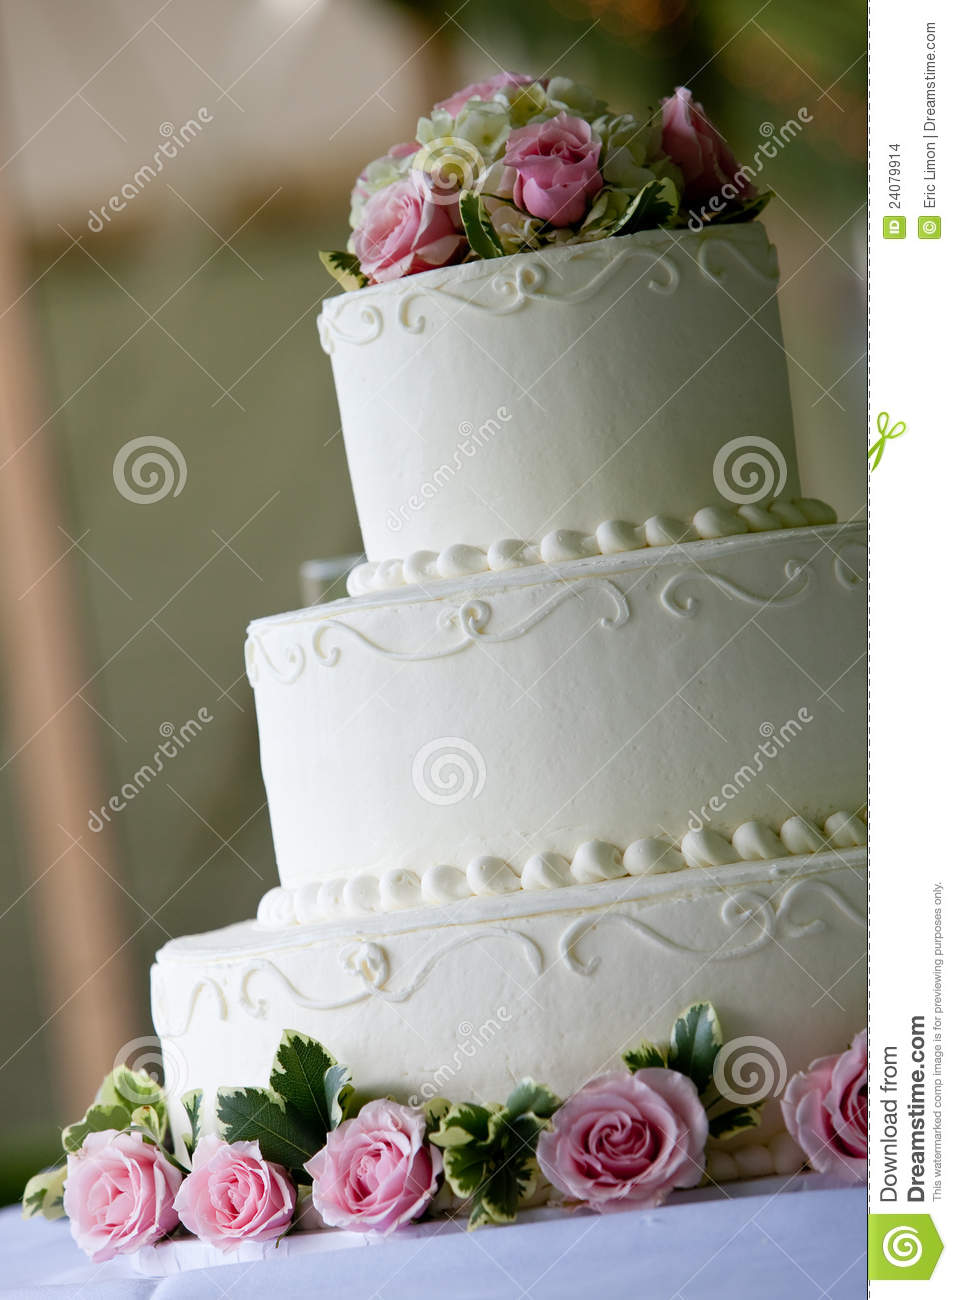 Stock Image Dreamstime White Wedding Cake With Pink Flowers Stock Photo Image